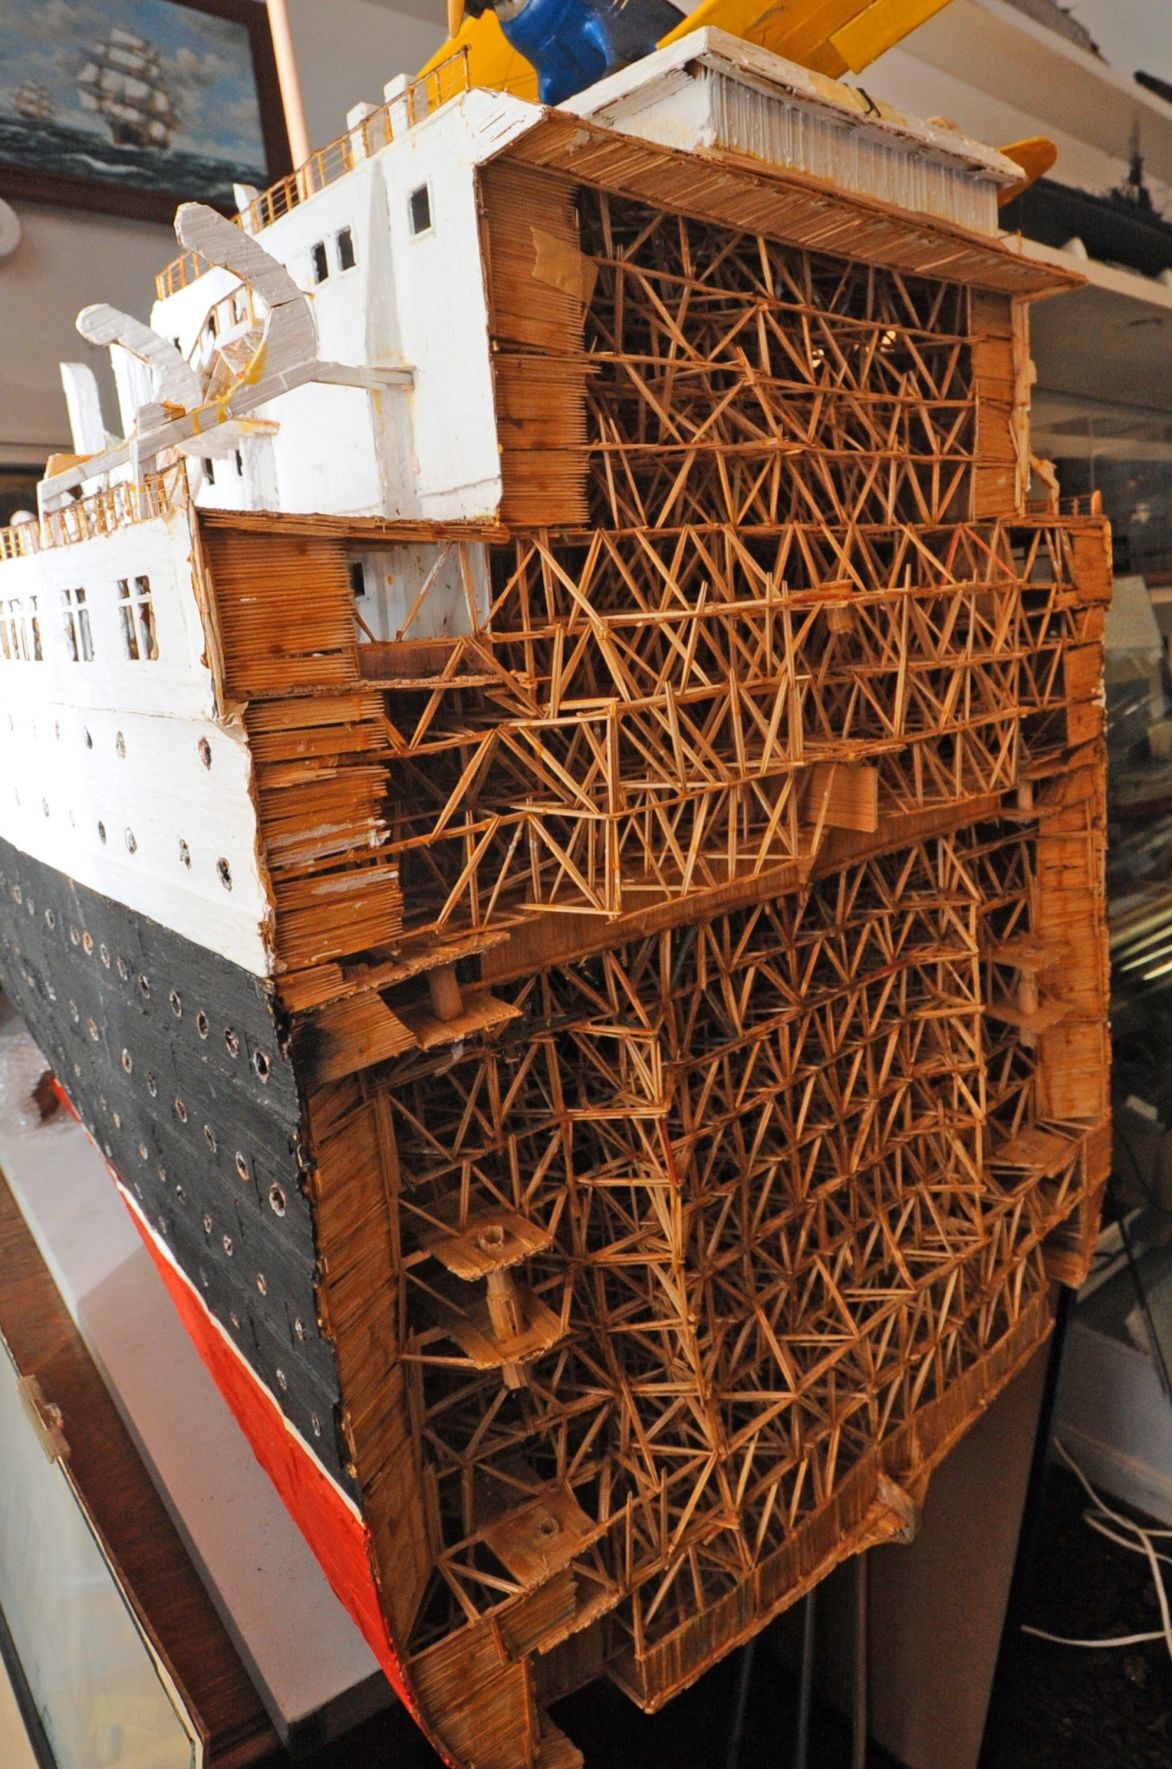 Sadorus museum crammed full of maritime history with models, texts, much more